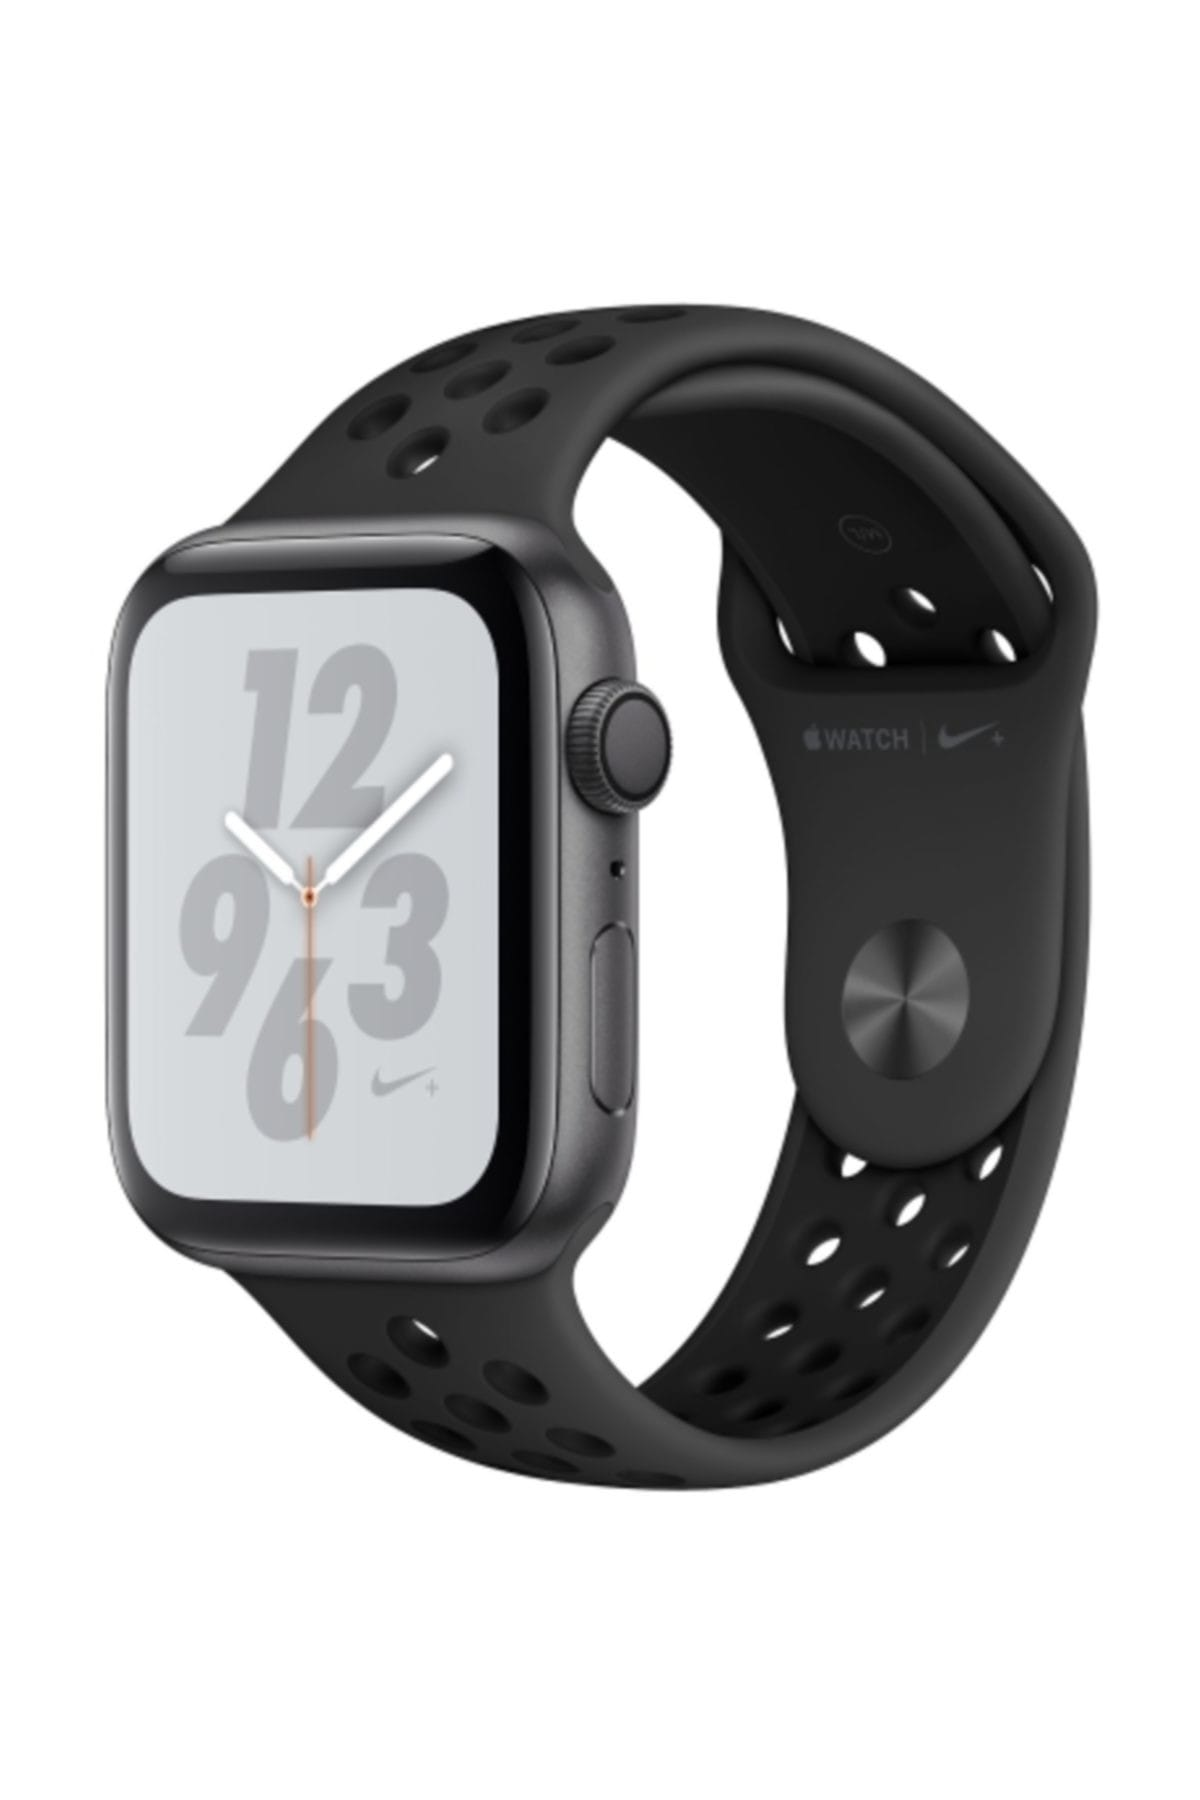 Apple Watch Nike+ Series 4 Gps 40 Mm Uzay Grisi Kasa Ve Antasit siyah Nike Spor Kordon